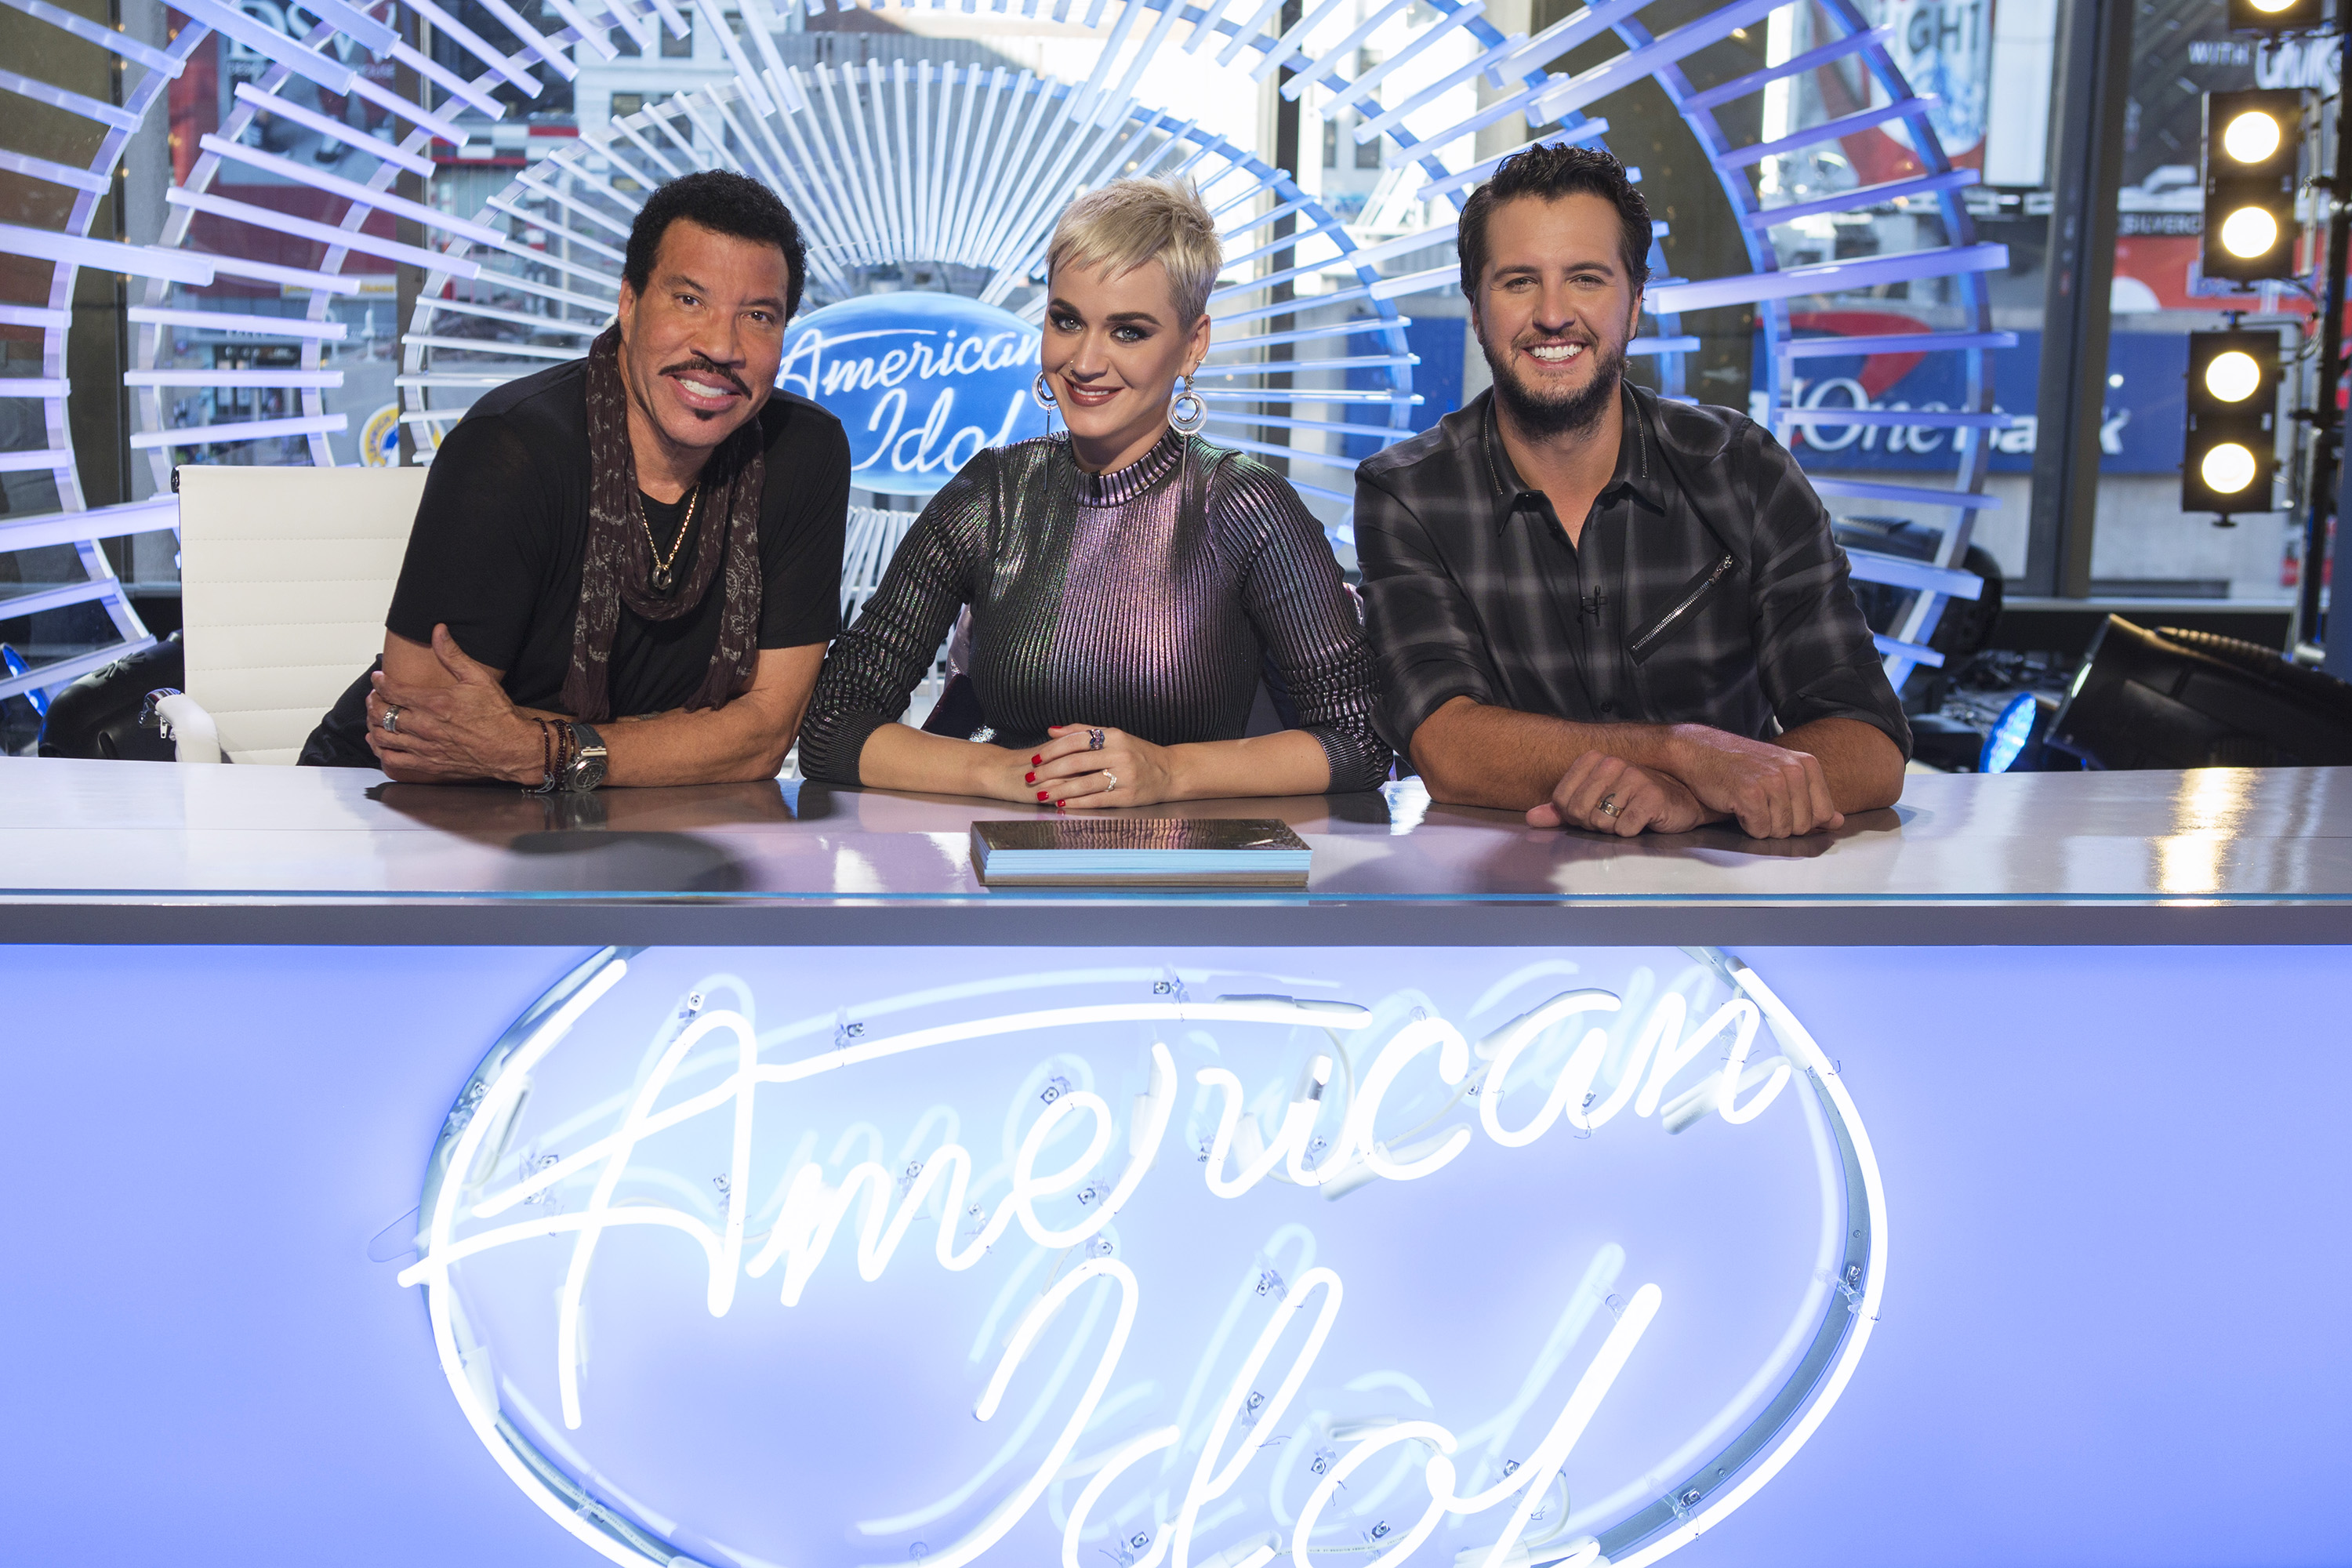 5 best and 5 worst things about the new American Idol